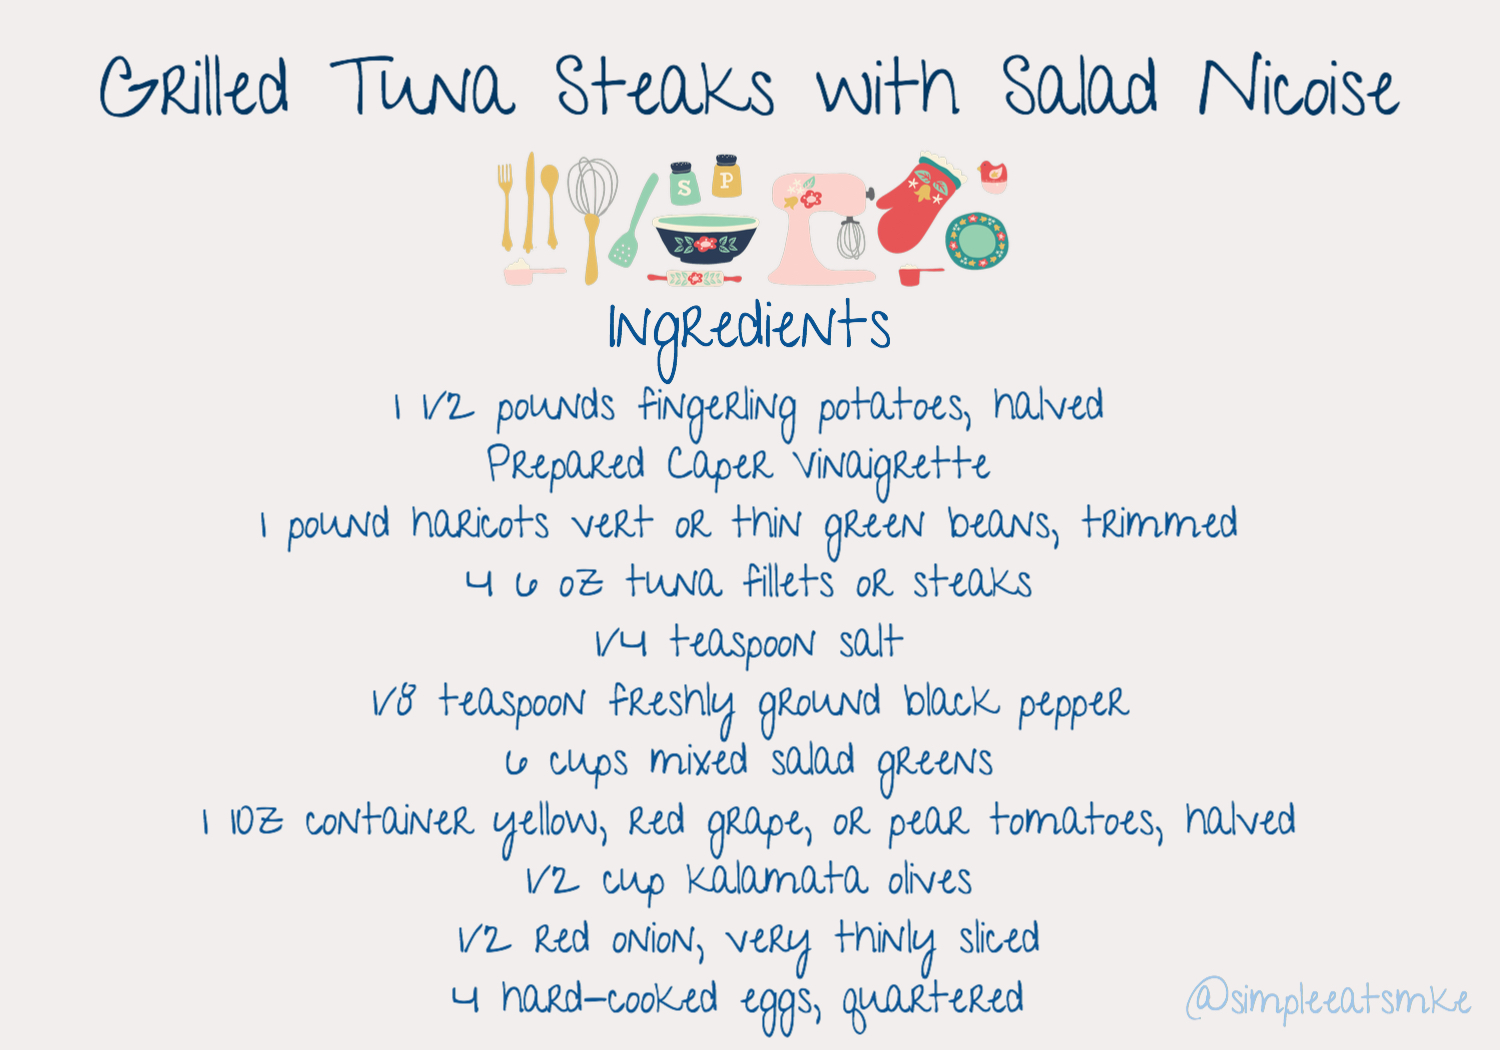 6%2F29 Grilled Tuna Steak Salad Nicoise Ingredients.jpg